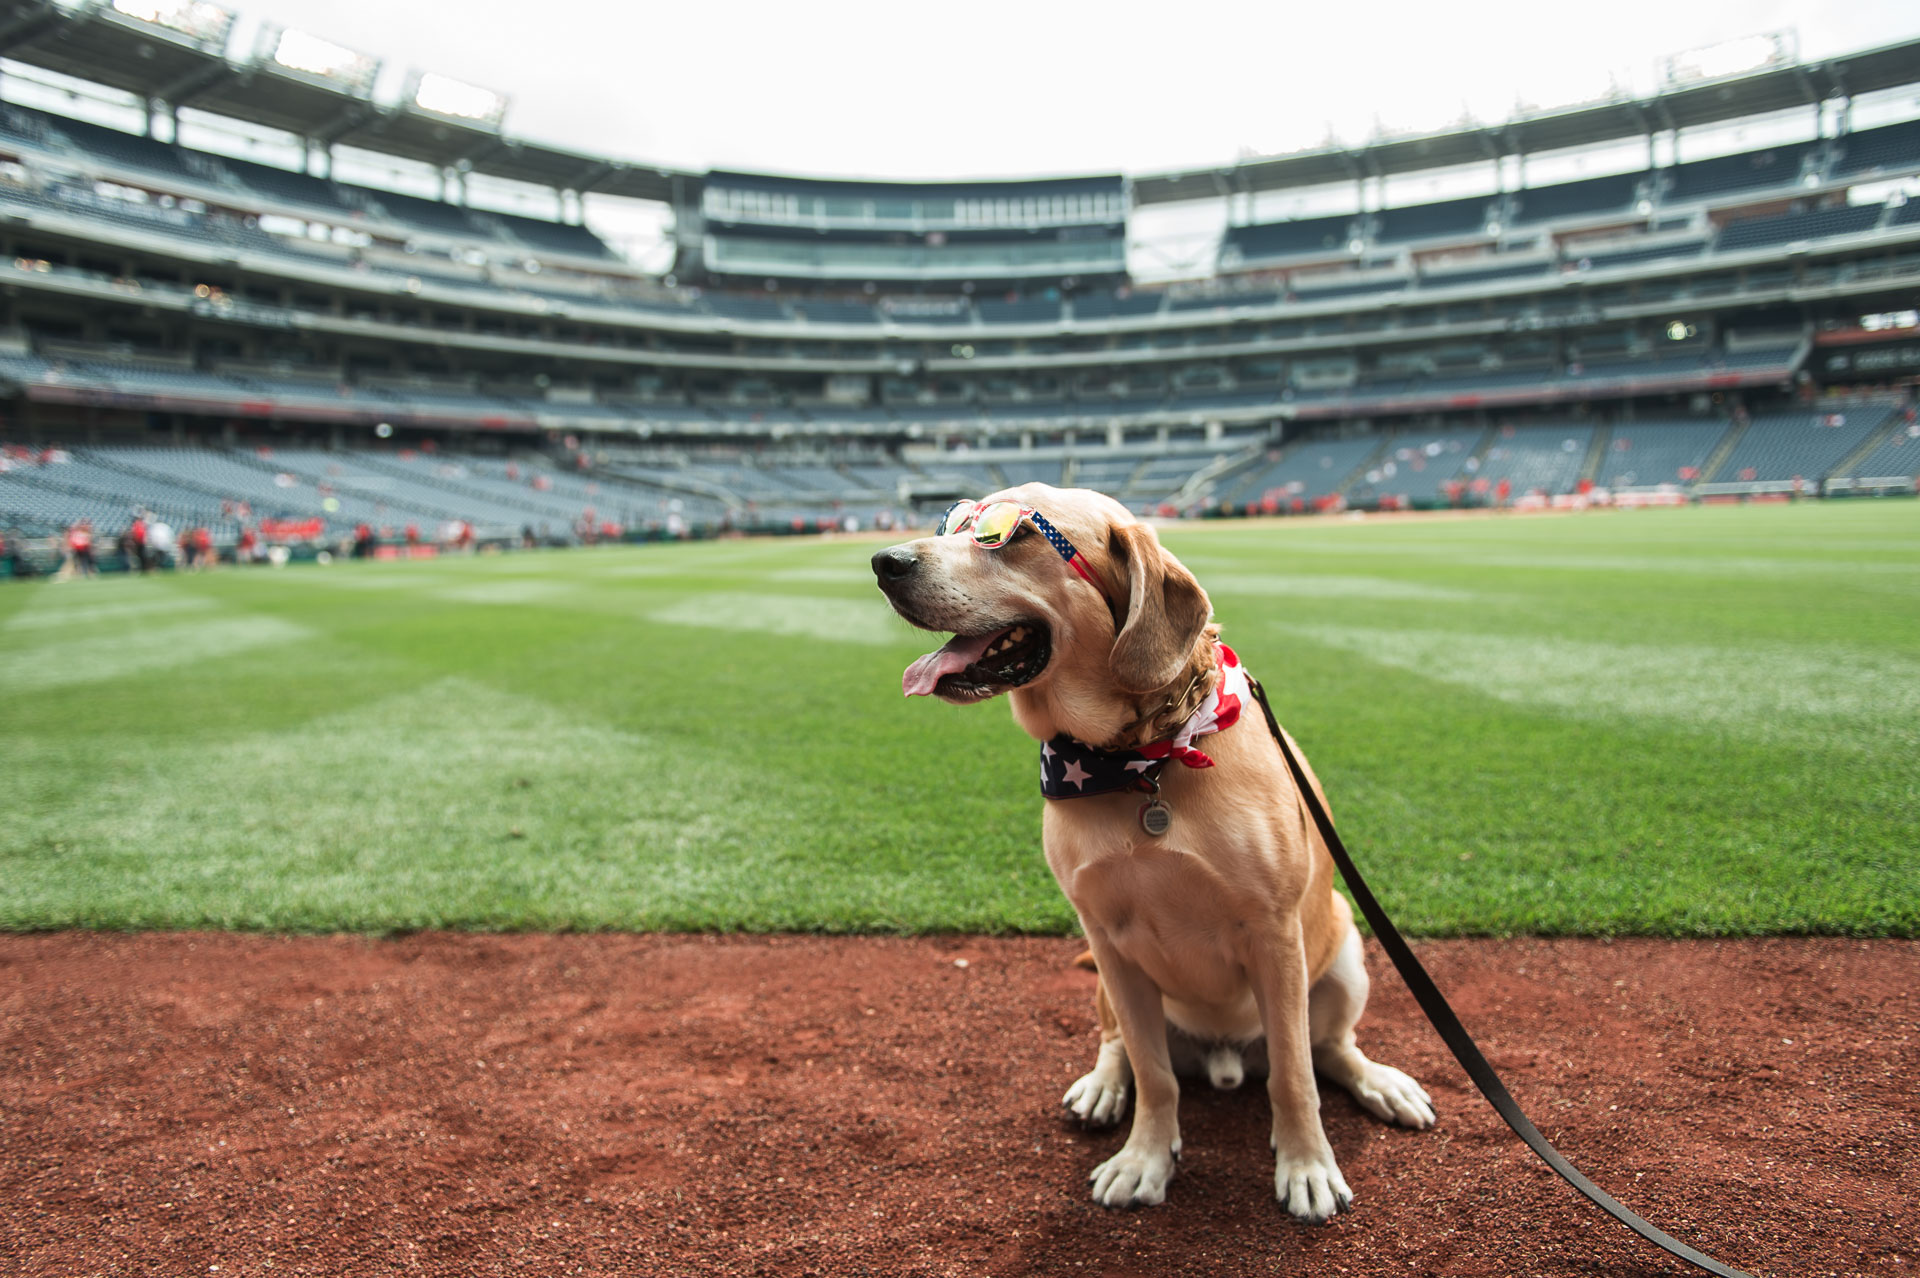 The Nationals may not have triumphed over the Phillies on Saturday, June 23, but the game truly went to the dogs during Pups in the Park. The special event allows dogs roam over the baseball field before the game. (Photo{ }Courtesy of the Washington Nationals Baseball Club)